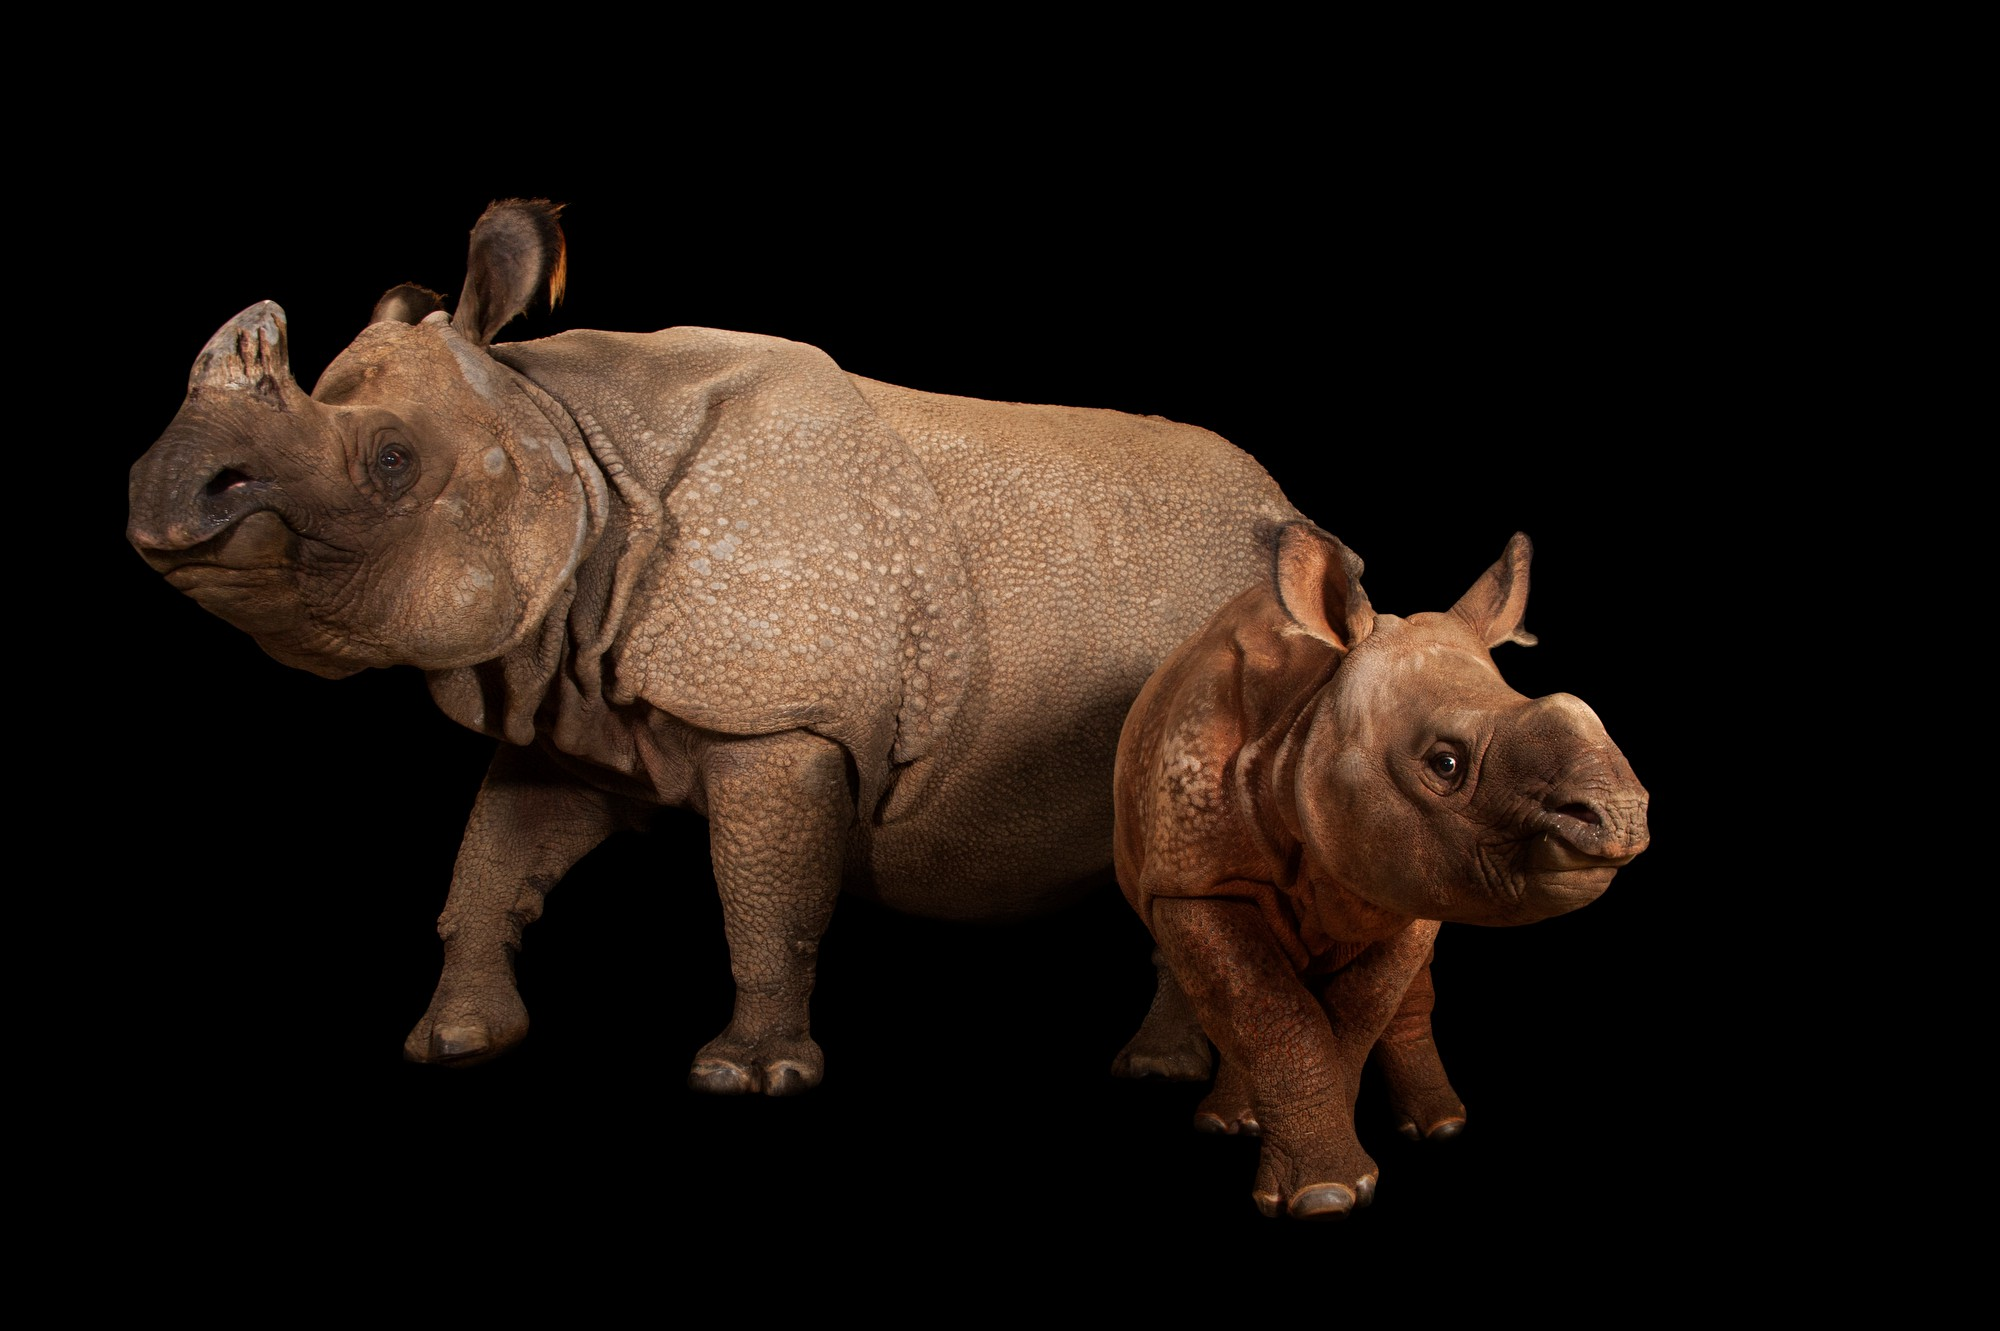 An endangered Indian rhinoceros female with calf (Rhinoceros unicornis) at the Fort Worth Zoo.